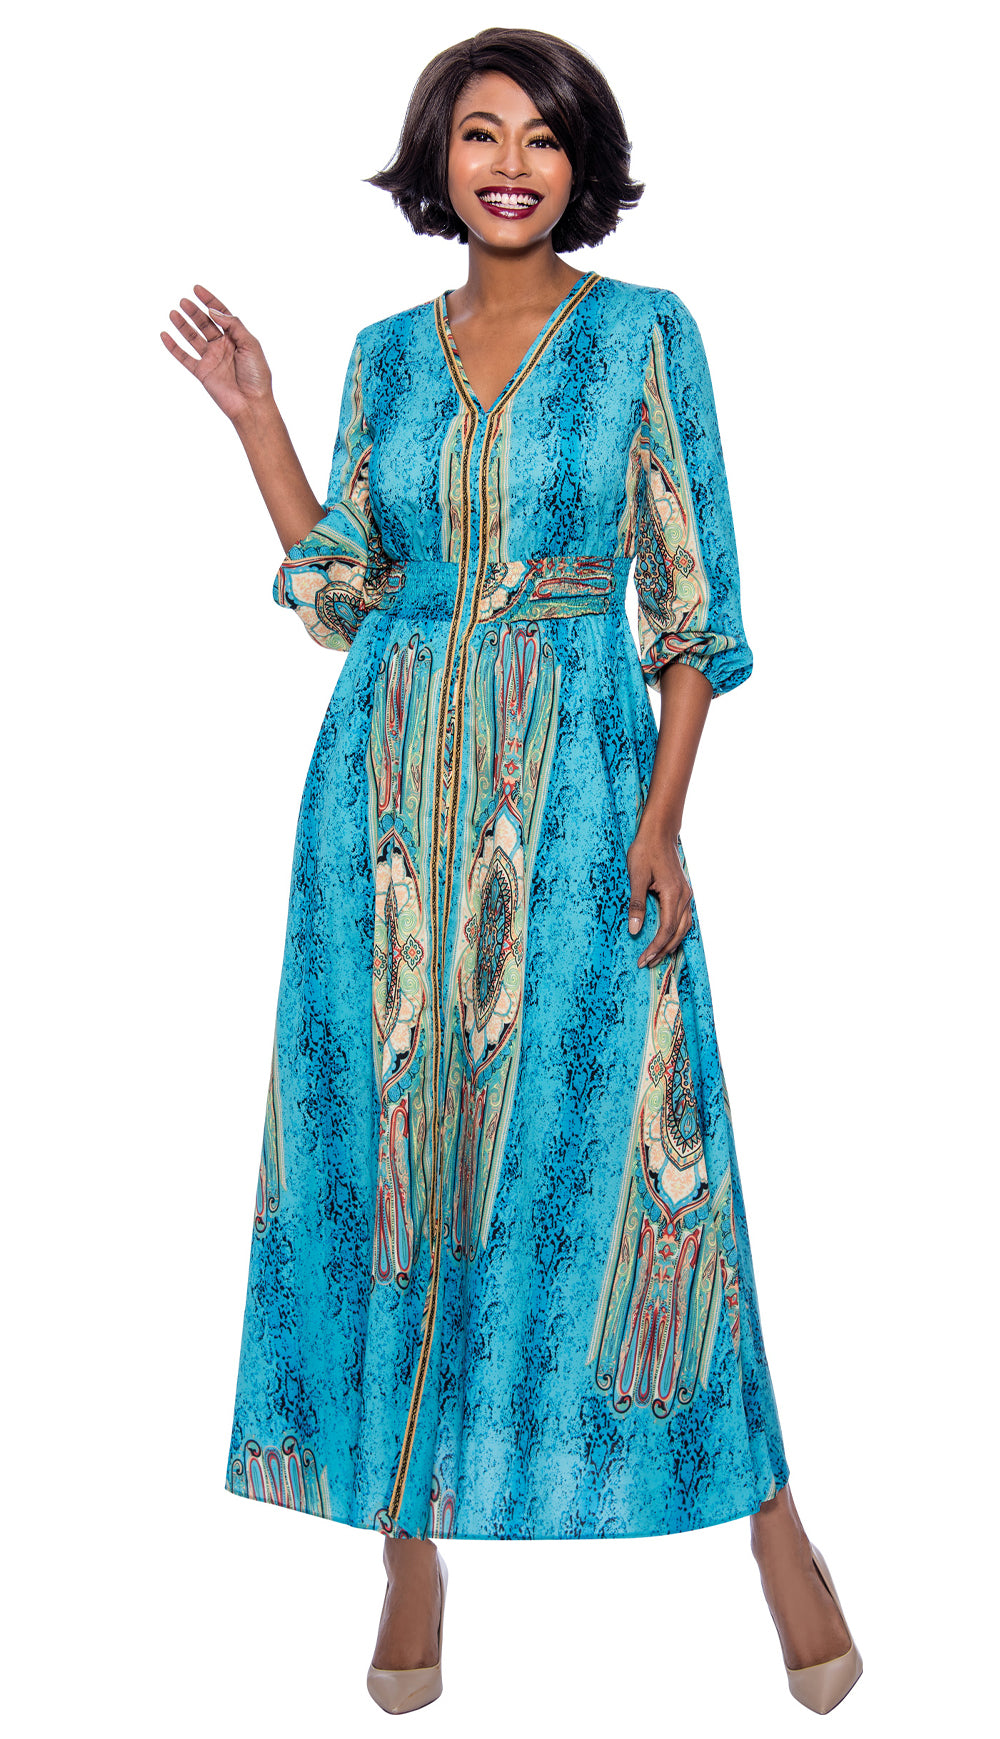 Terramina Dress 7829-Blue - Church Suits For Less